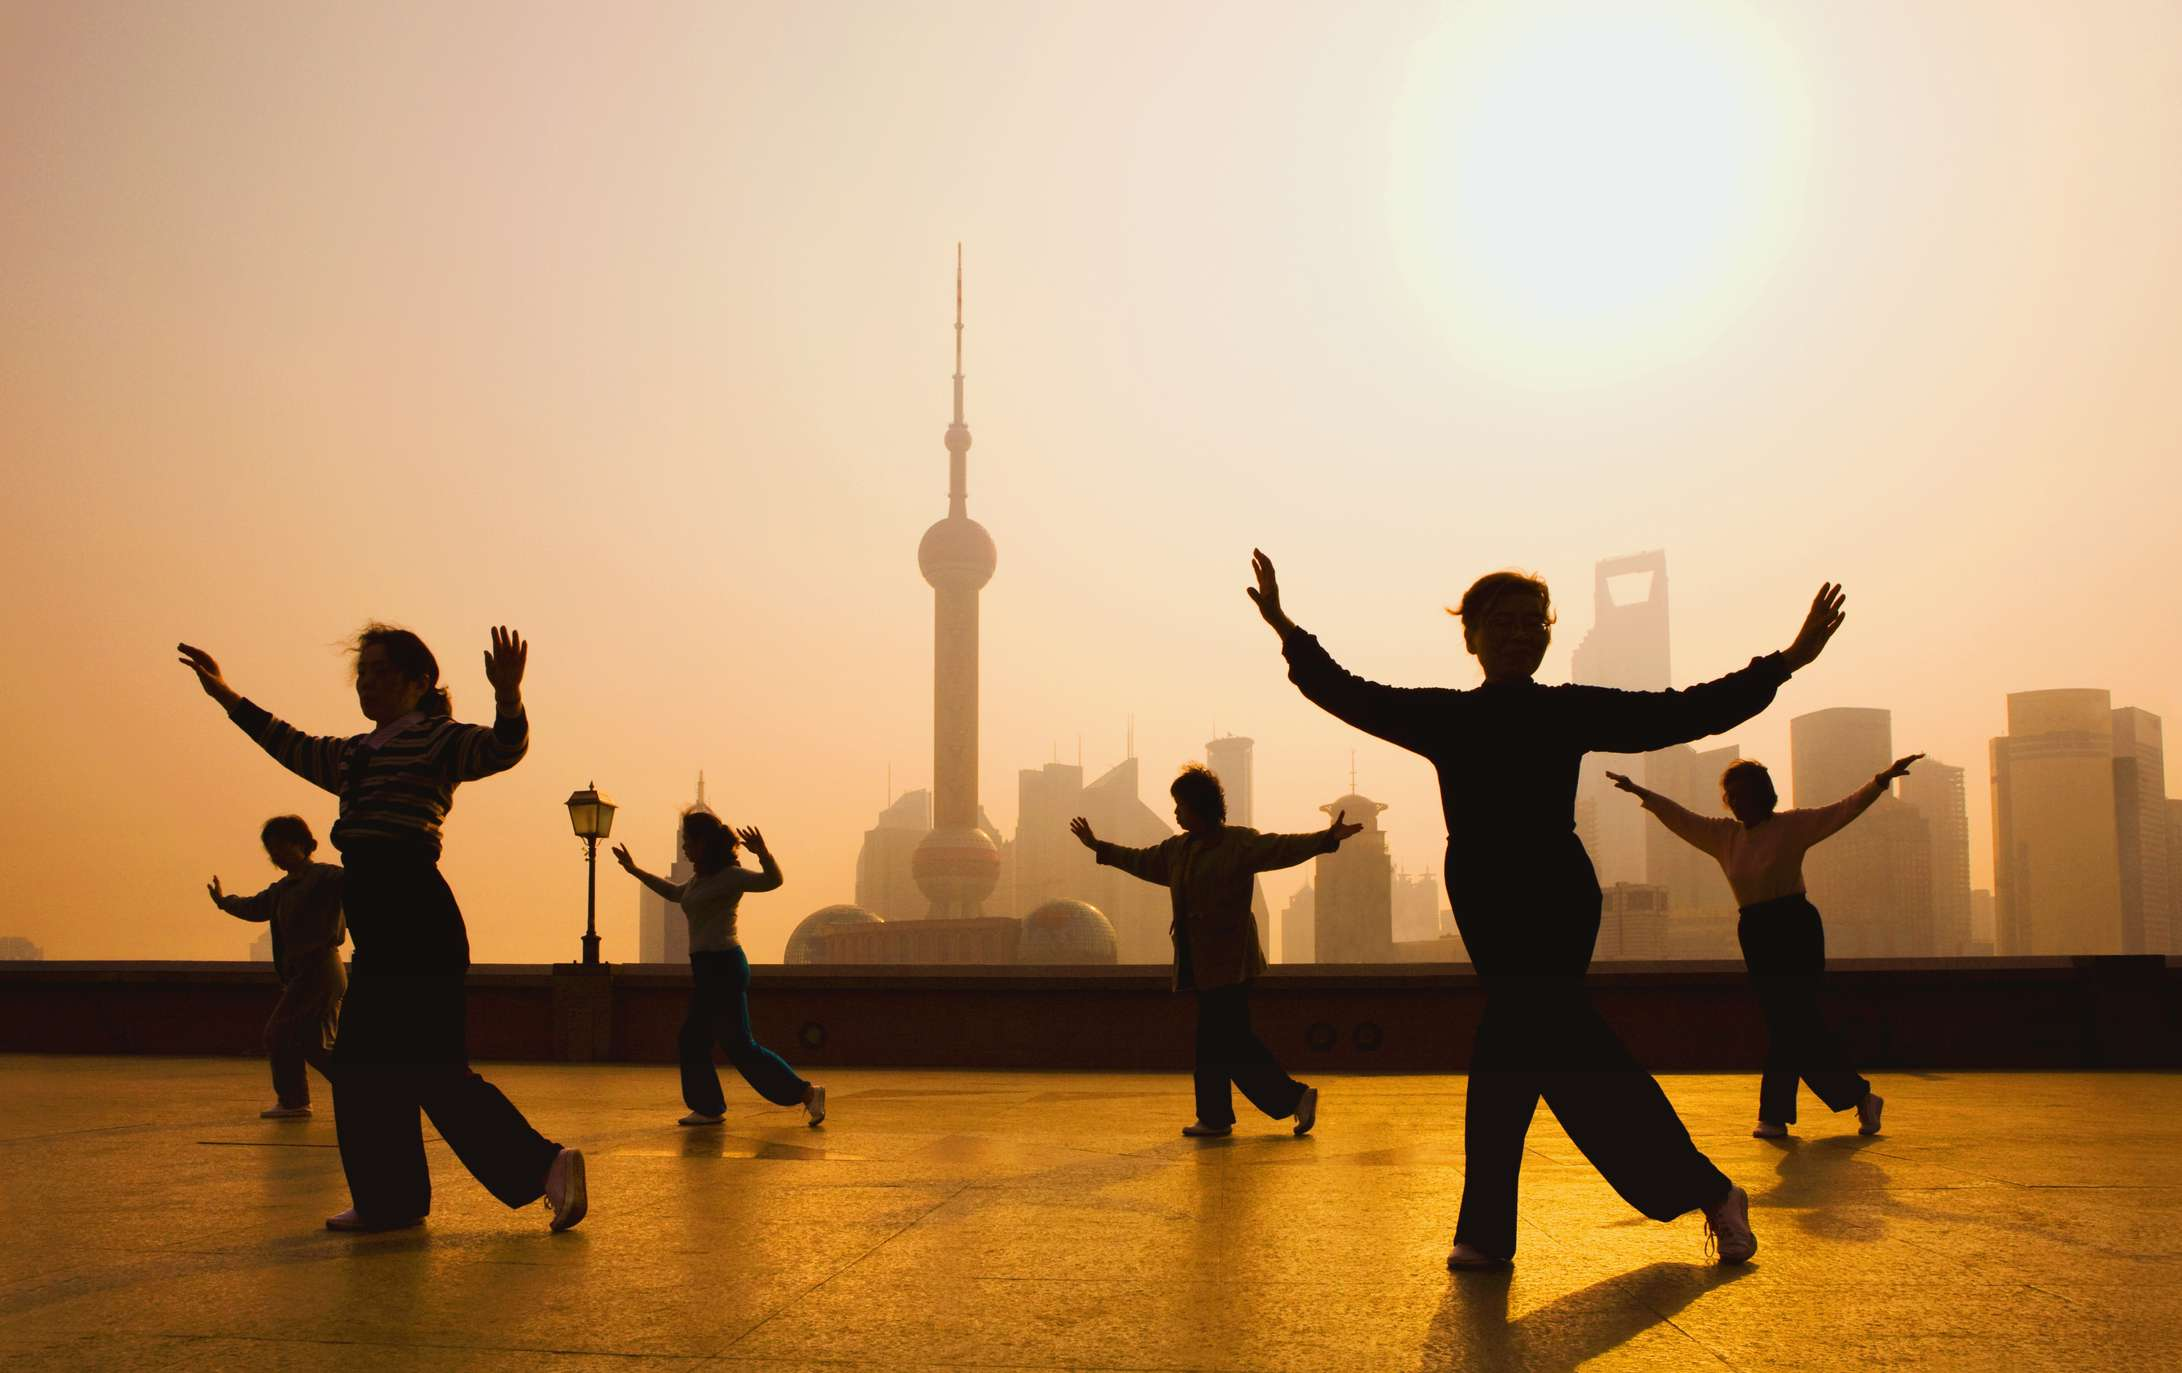 People practicing tai chi on the Bund. Oriental Pearl Tower and Pudong skyline in background.